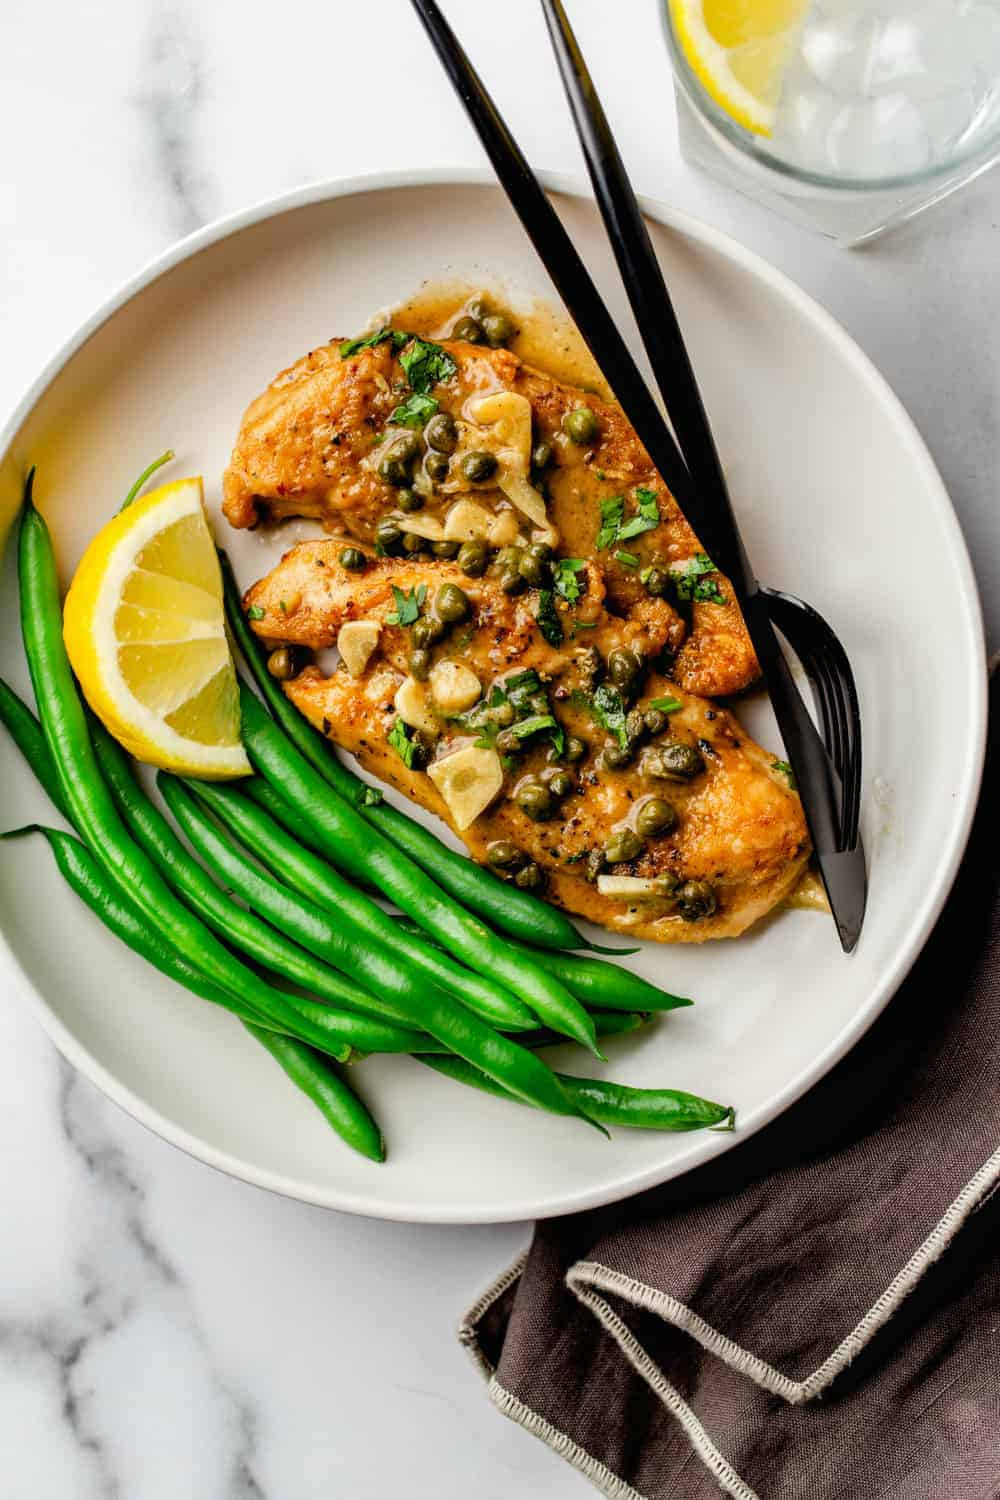 Chicken Piccata is a bright, lemony dish, delicious for any night of the week!